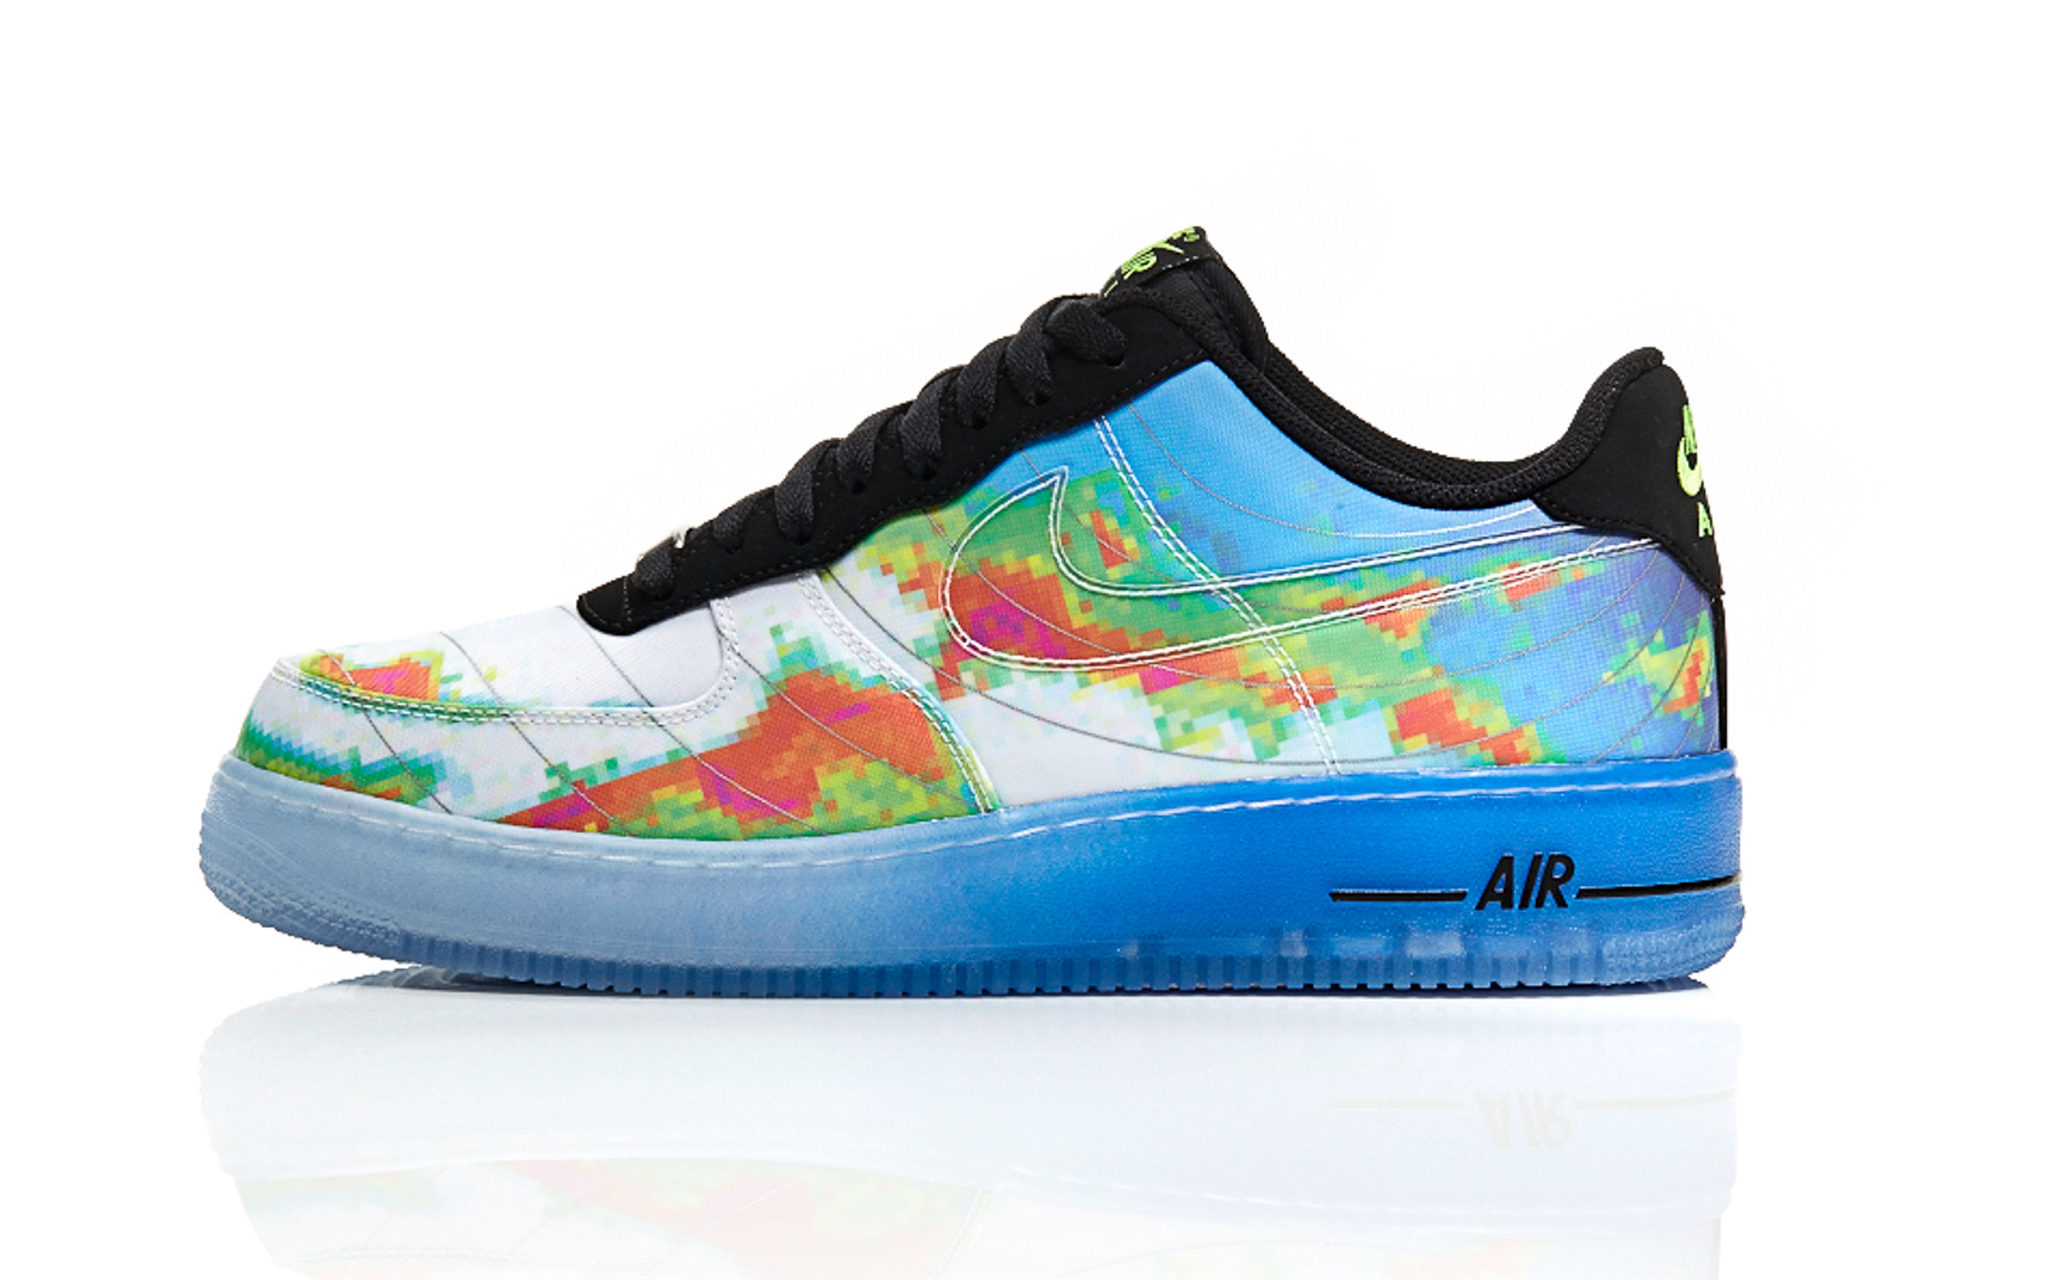 Air Force 1 (August 2013)